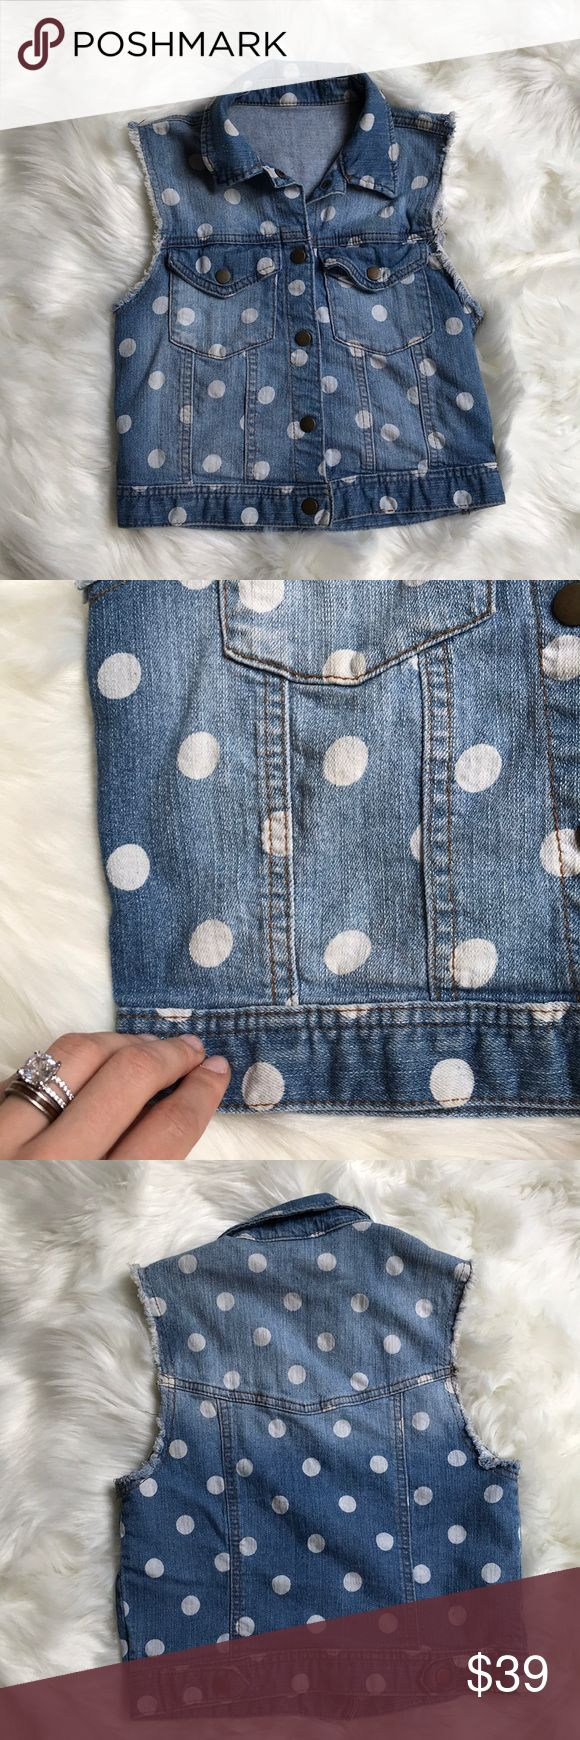 Denim Polka Dot Vest Hecka cute vest for all your cute denim looks. Great condition. Jackets & Coats Vests